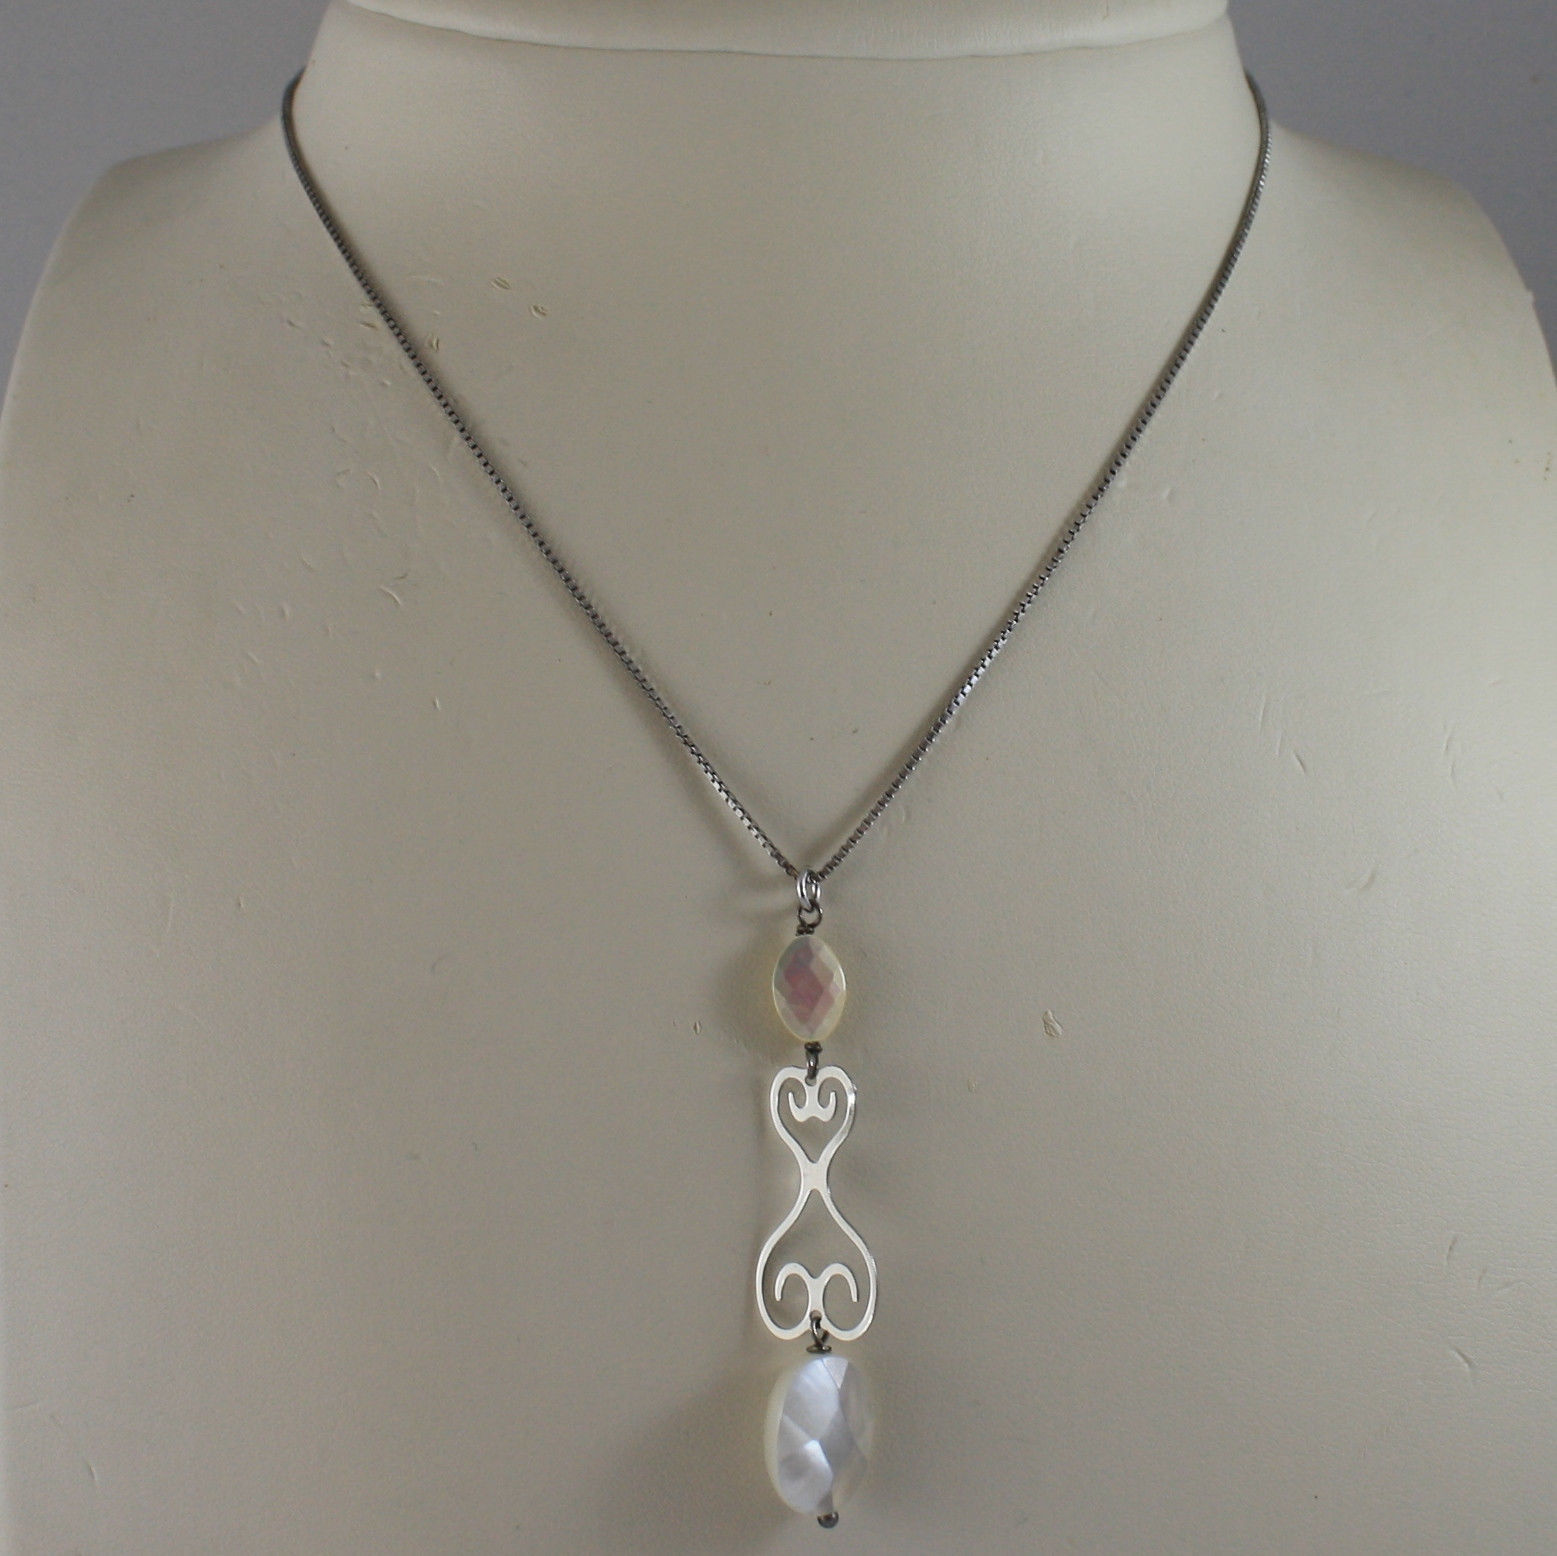 .925 SILVER RHODIUM NECKLACE WITH OVAL MOTHER OF PEARL